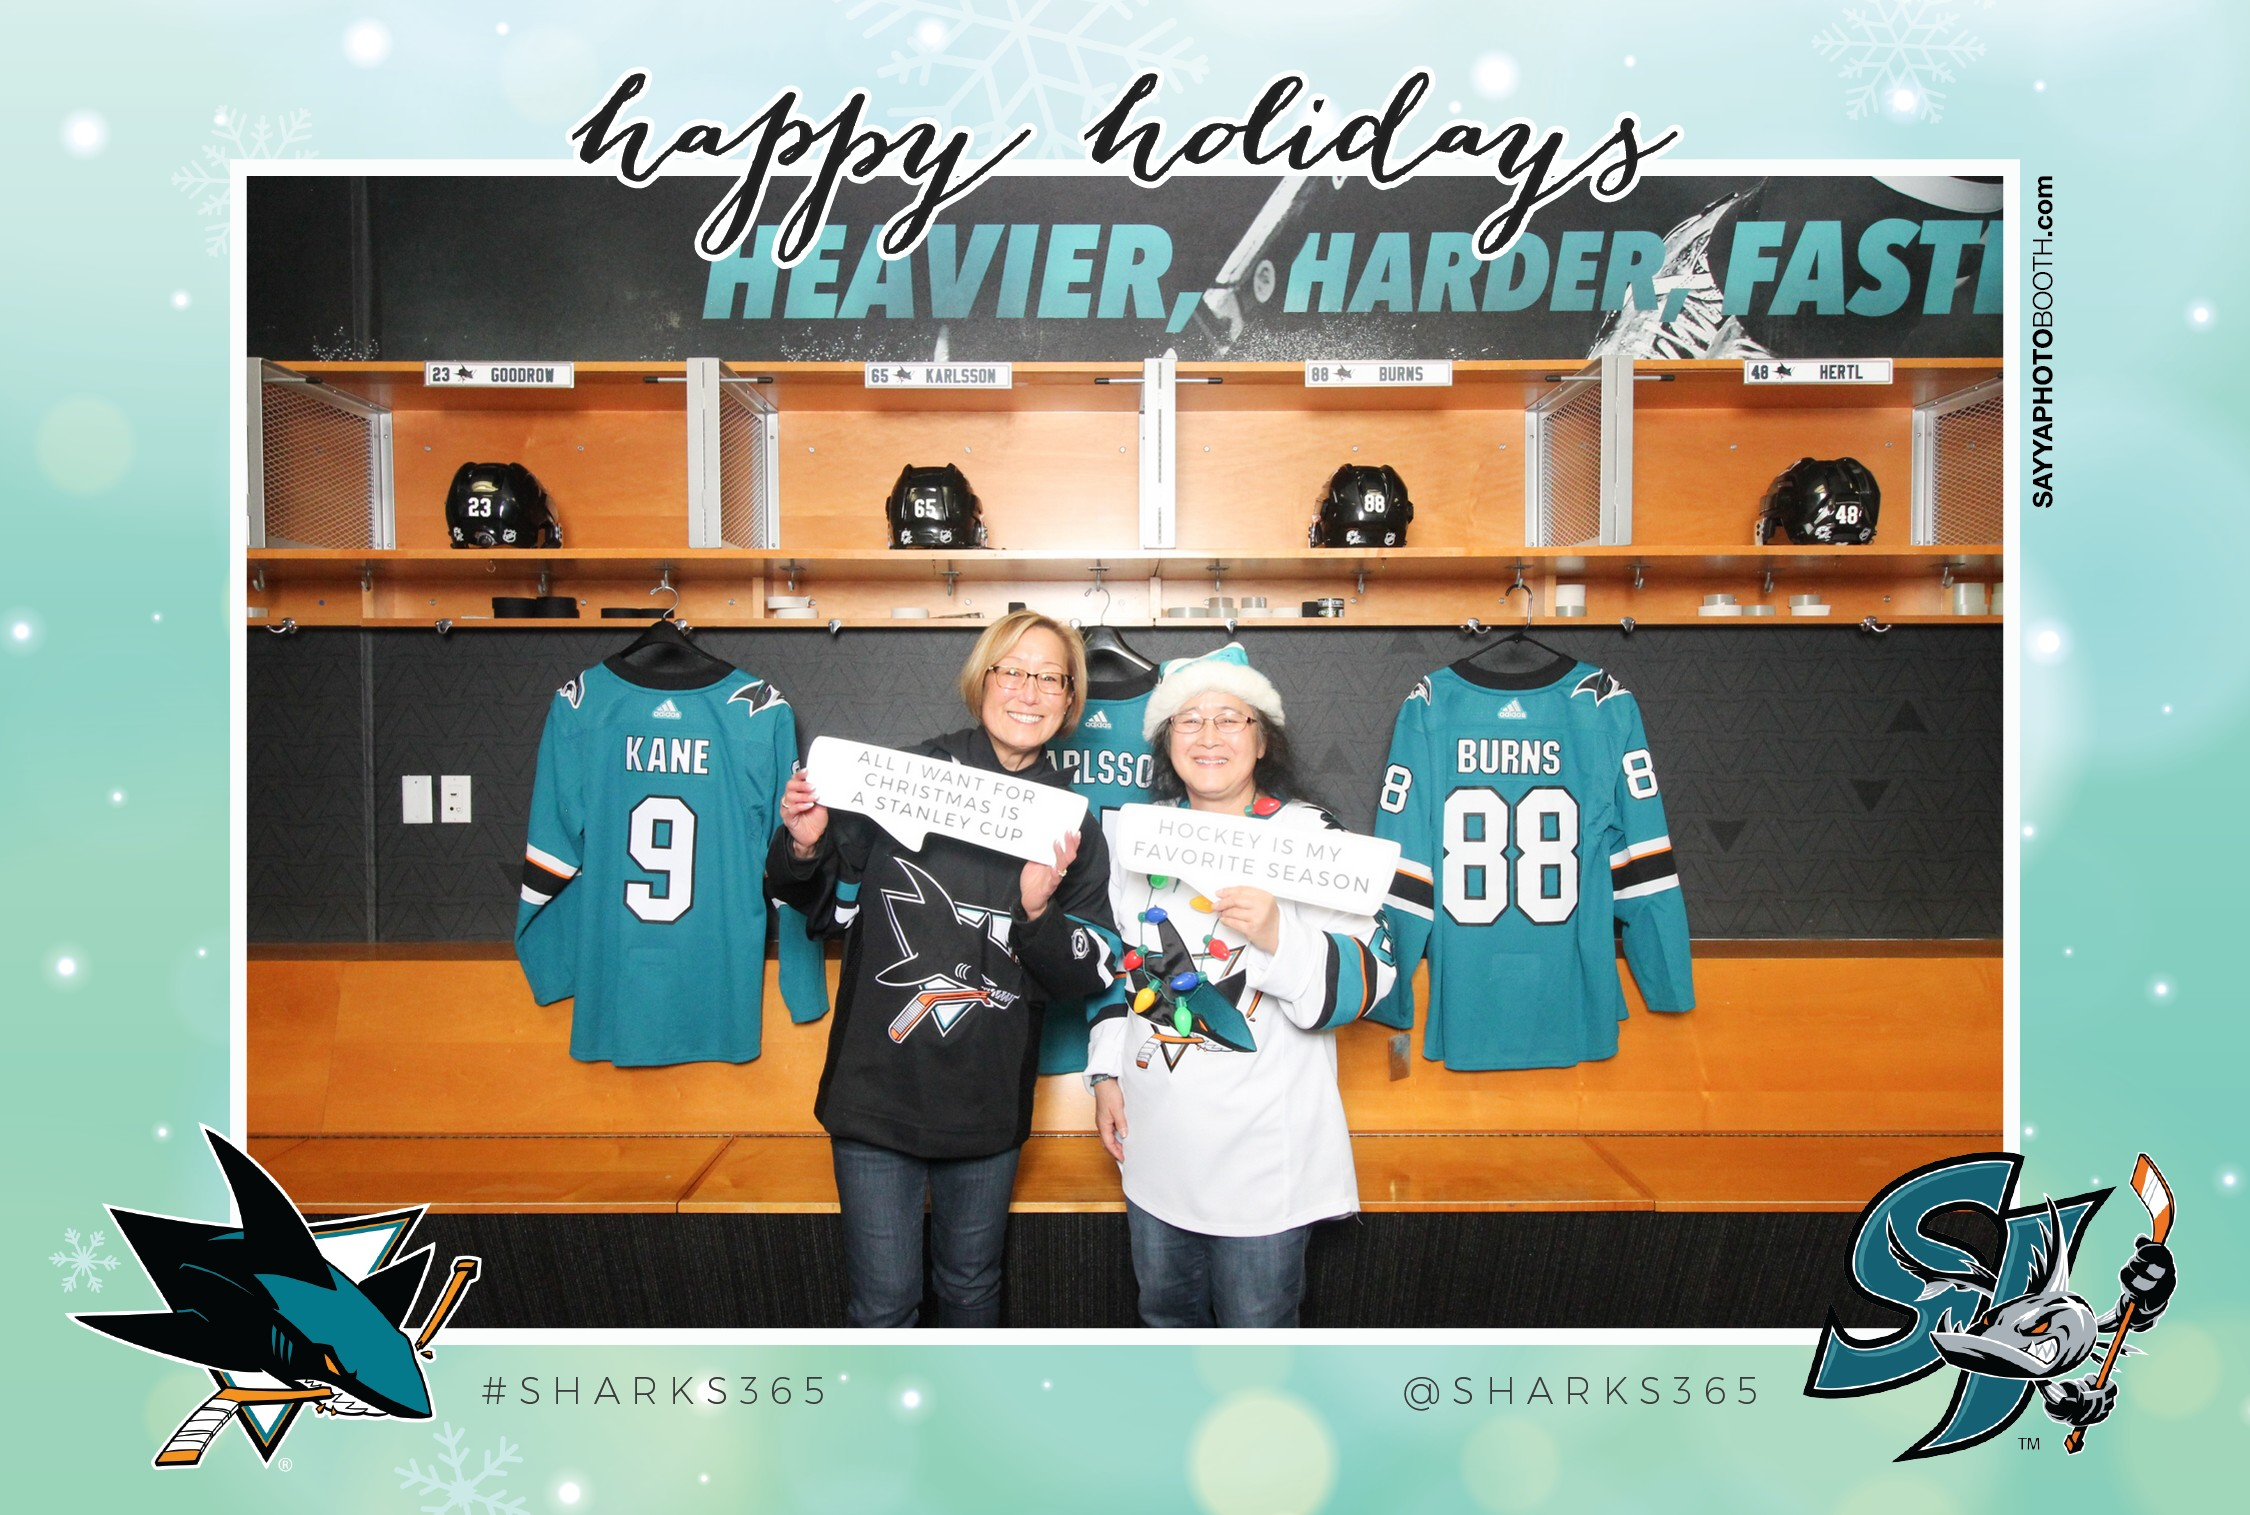 Sharks365 & Barracuda Member Holiday